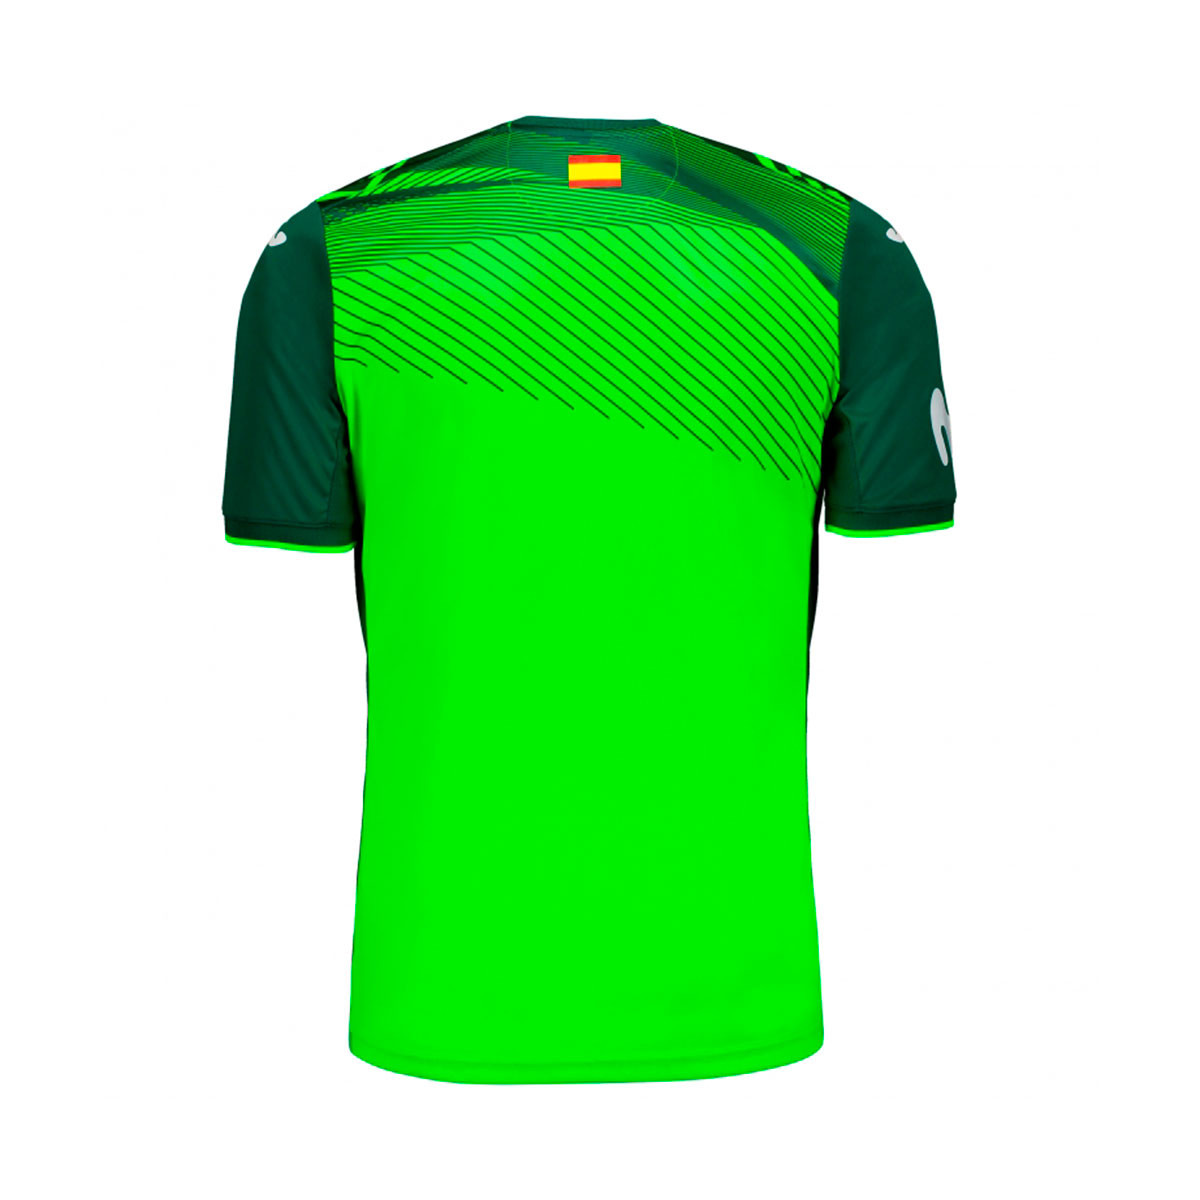 sports shoes 894dc 79cf6 Camiseta Movistar Inter FS Segunda Equipación 2019-2020 Verde